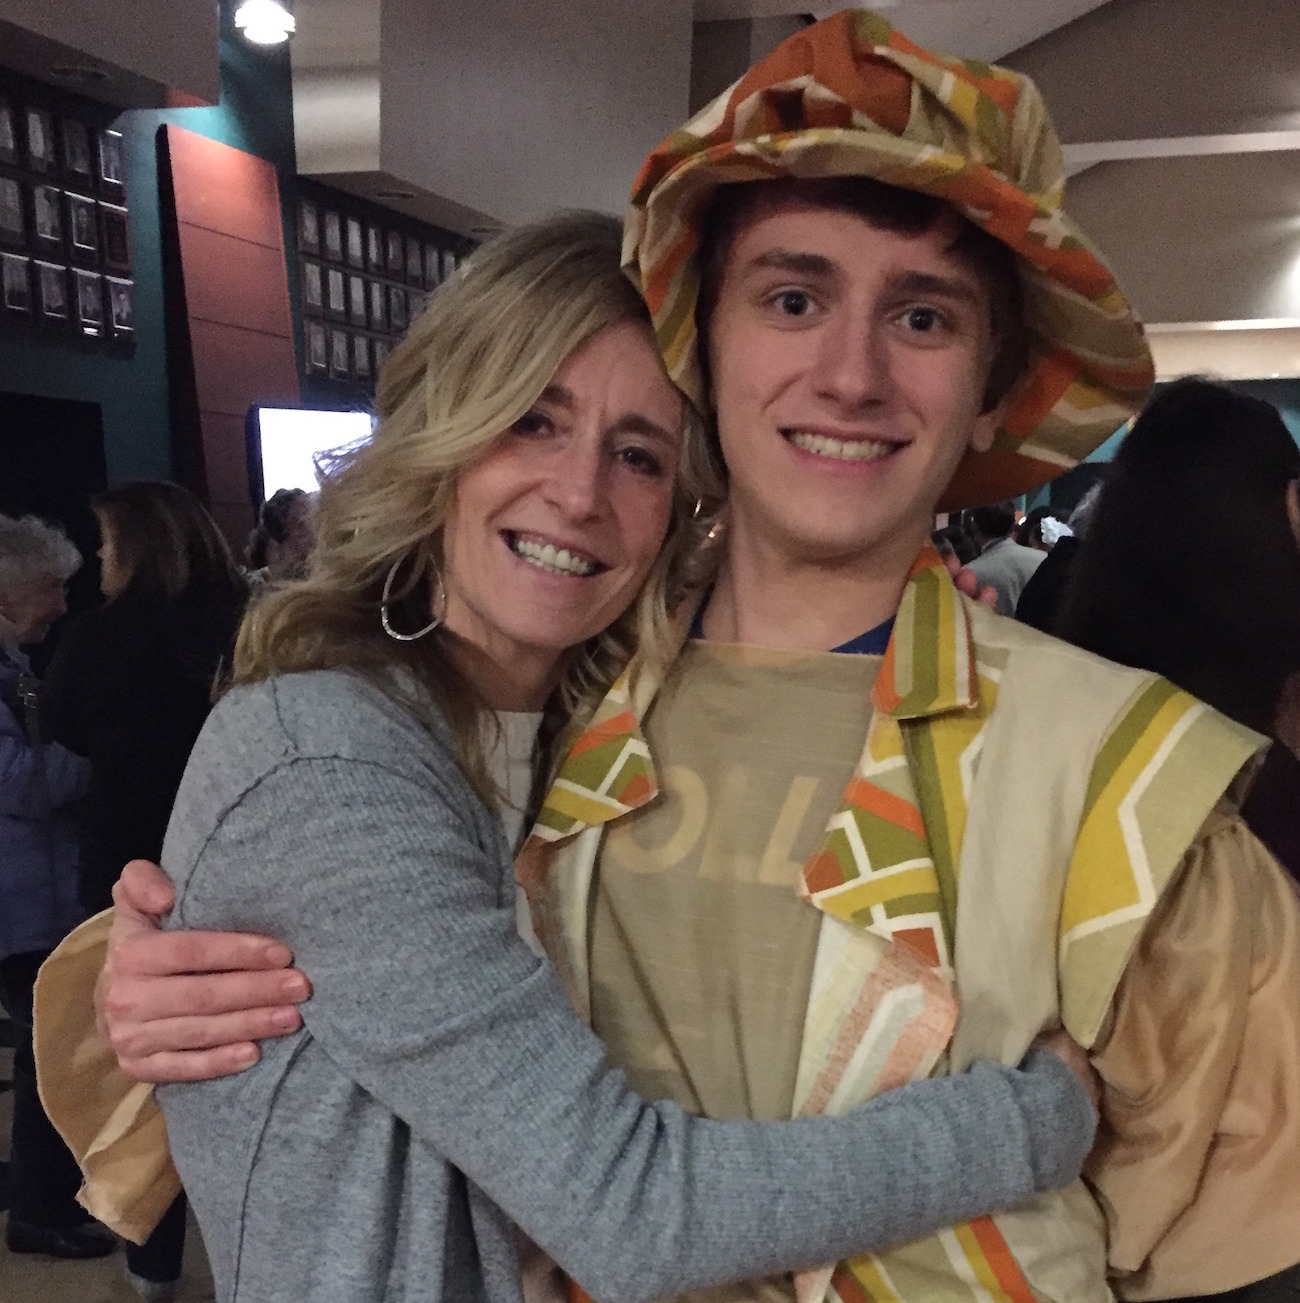 Mother and son hugging, with son in costume from school play